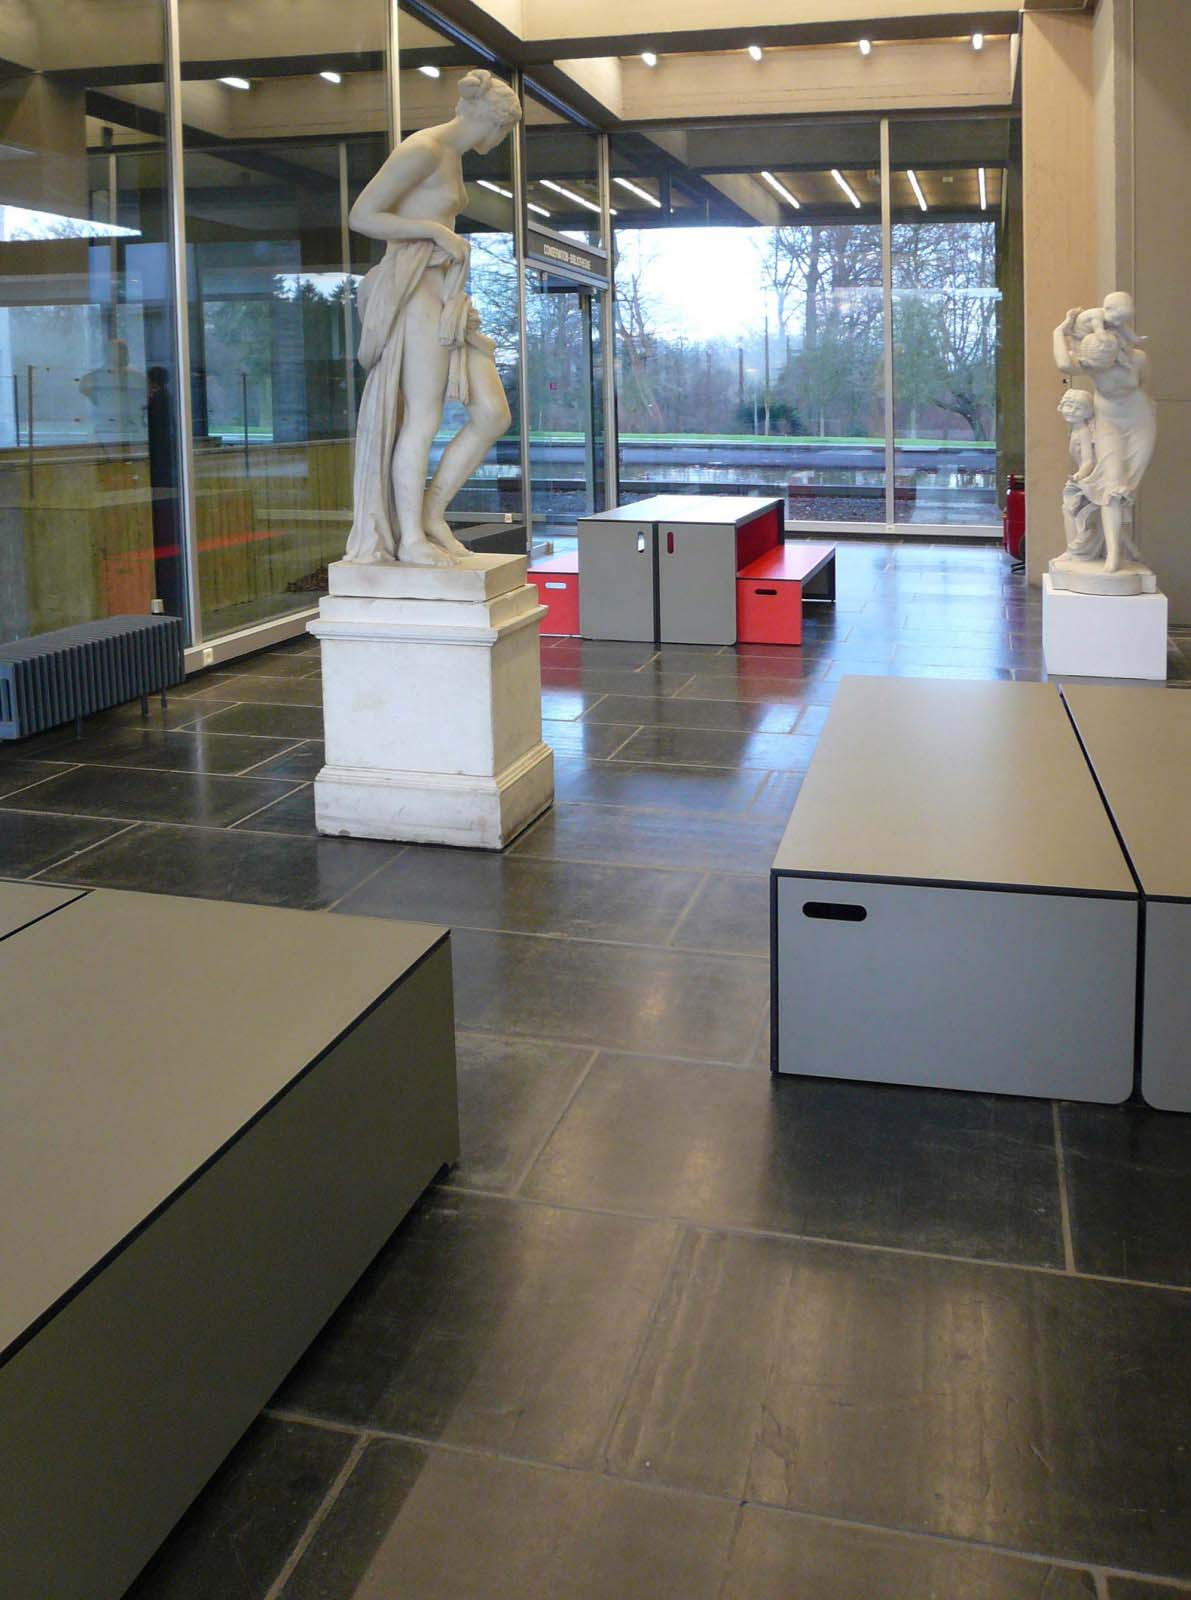 mobilier_musee Mariemont_Lucile Soufflet_2